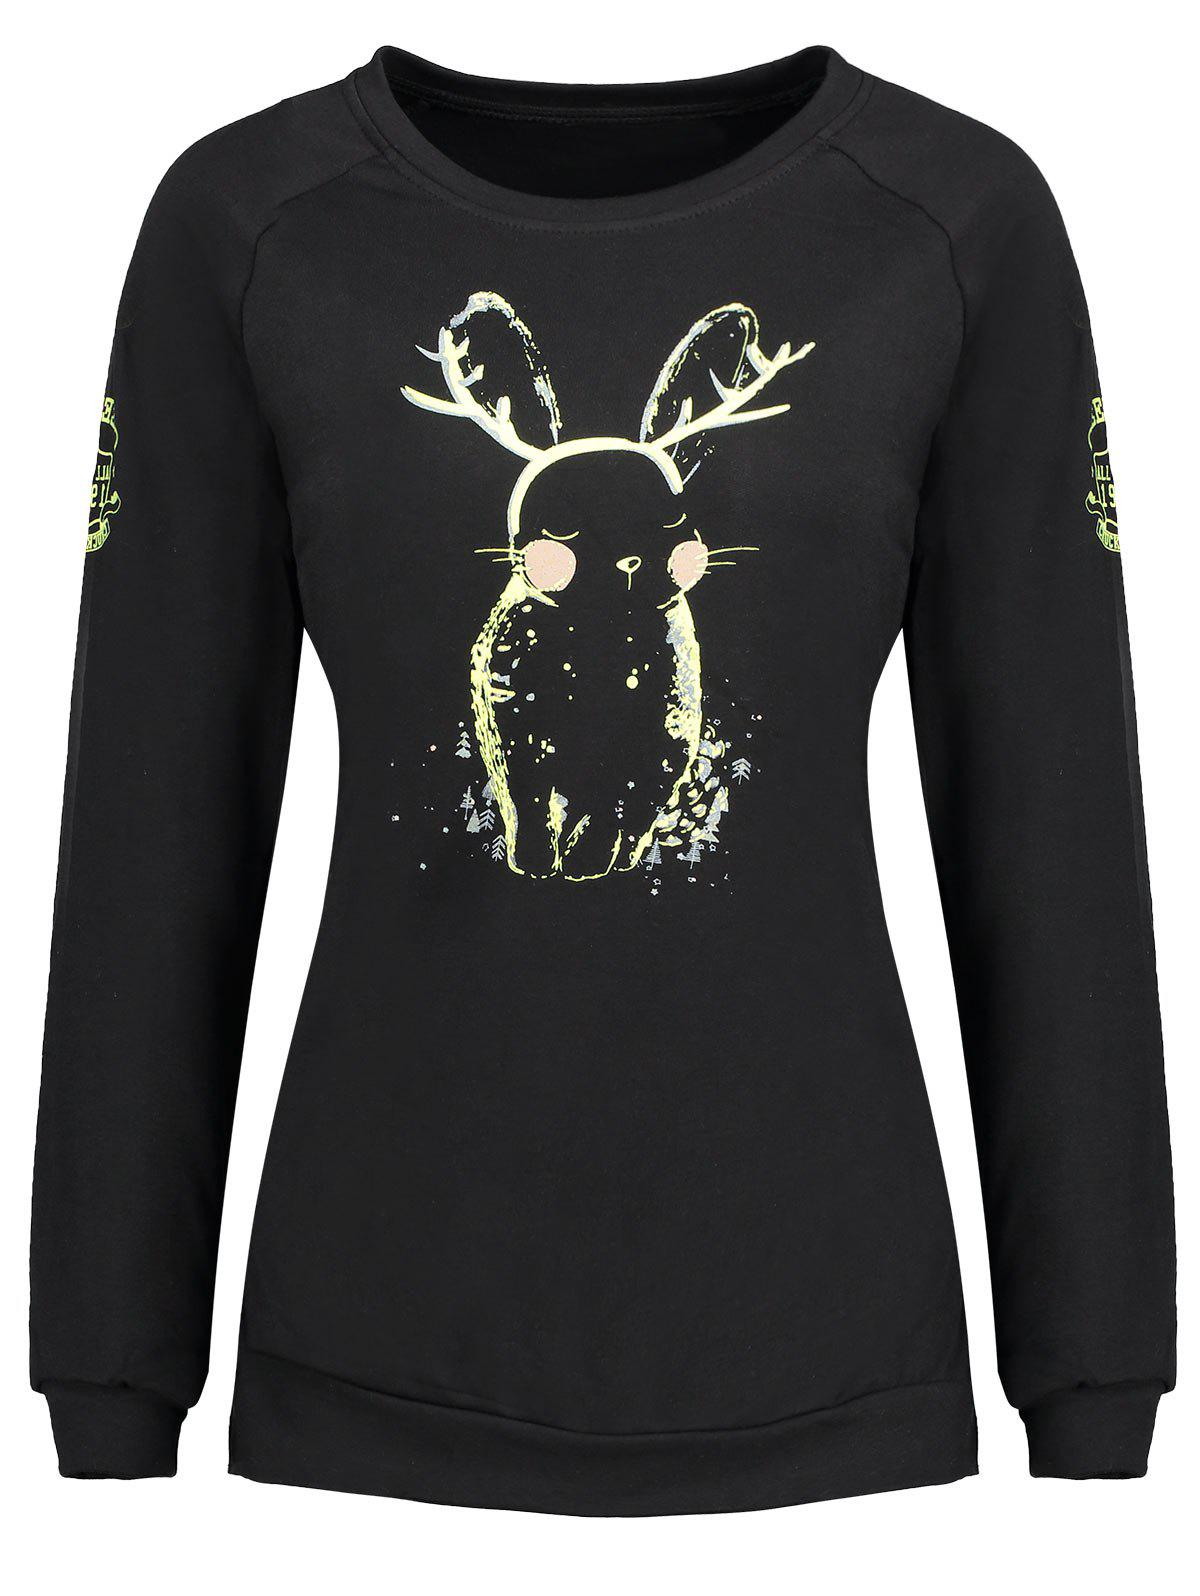 Plus Size Bunny Print Sweatshirt - BLACK 5XL